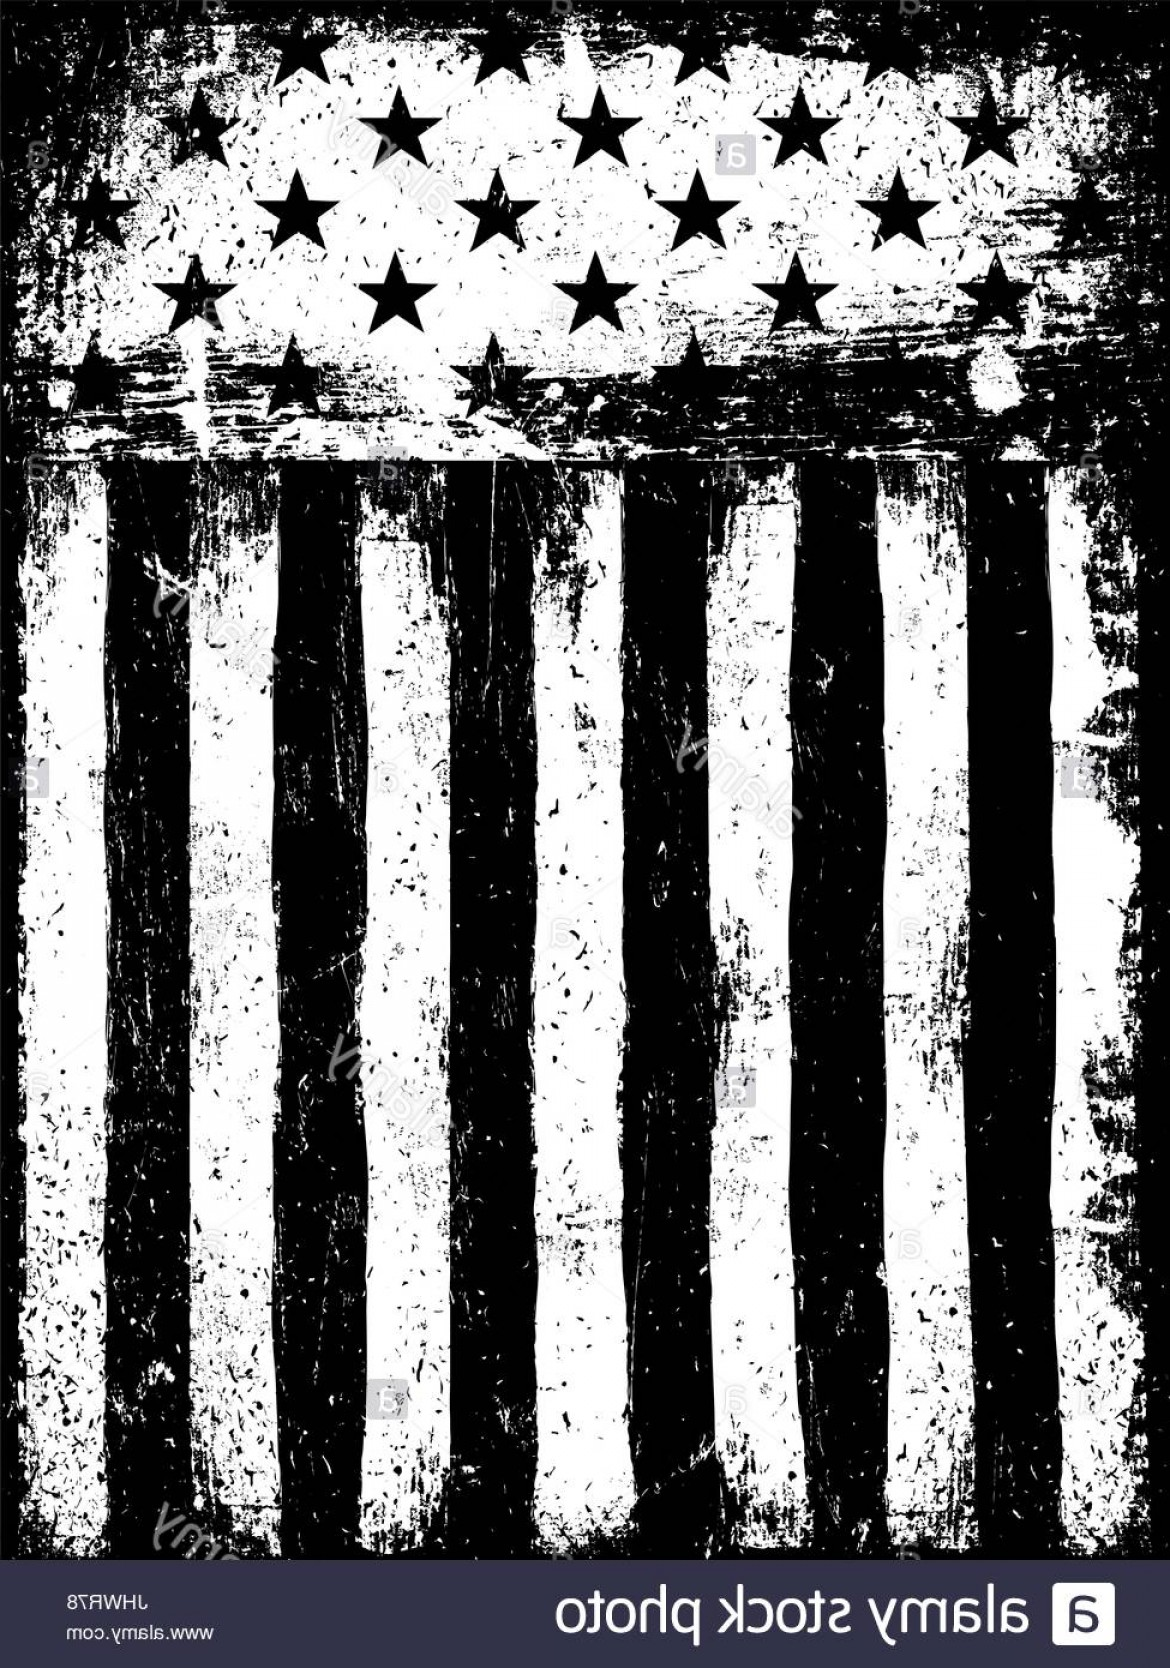 Vertical American Flag Vector: Stock Photo Stars And Stripes Monochrome Negative Photocopy American Flag Background